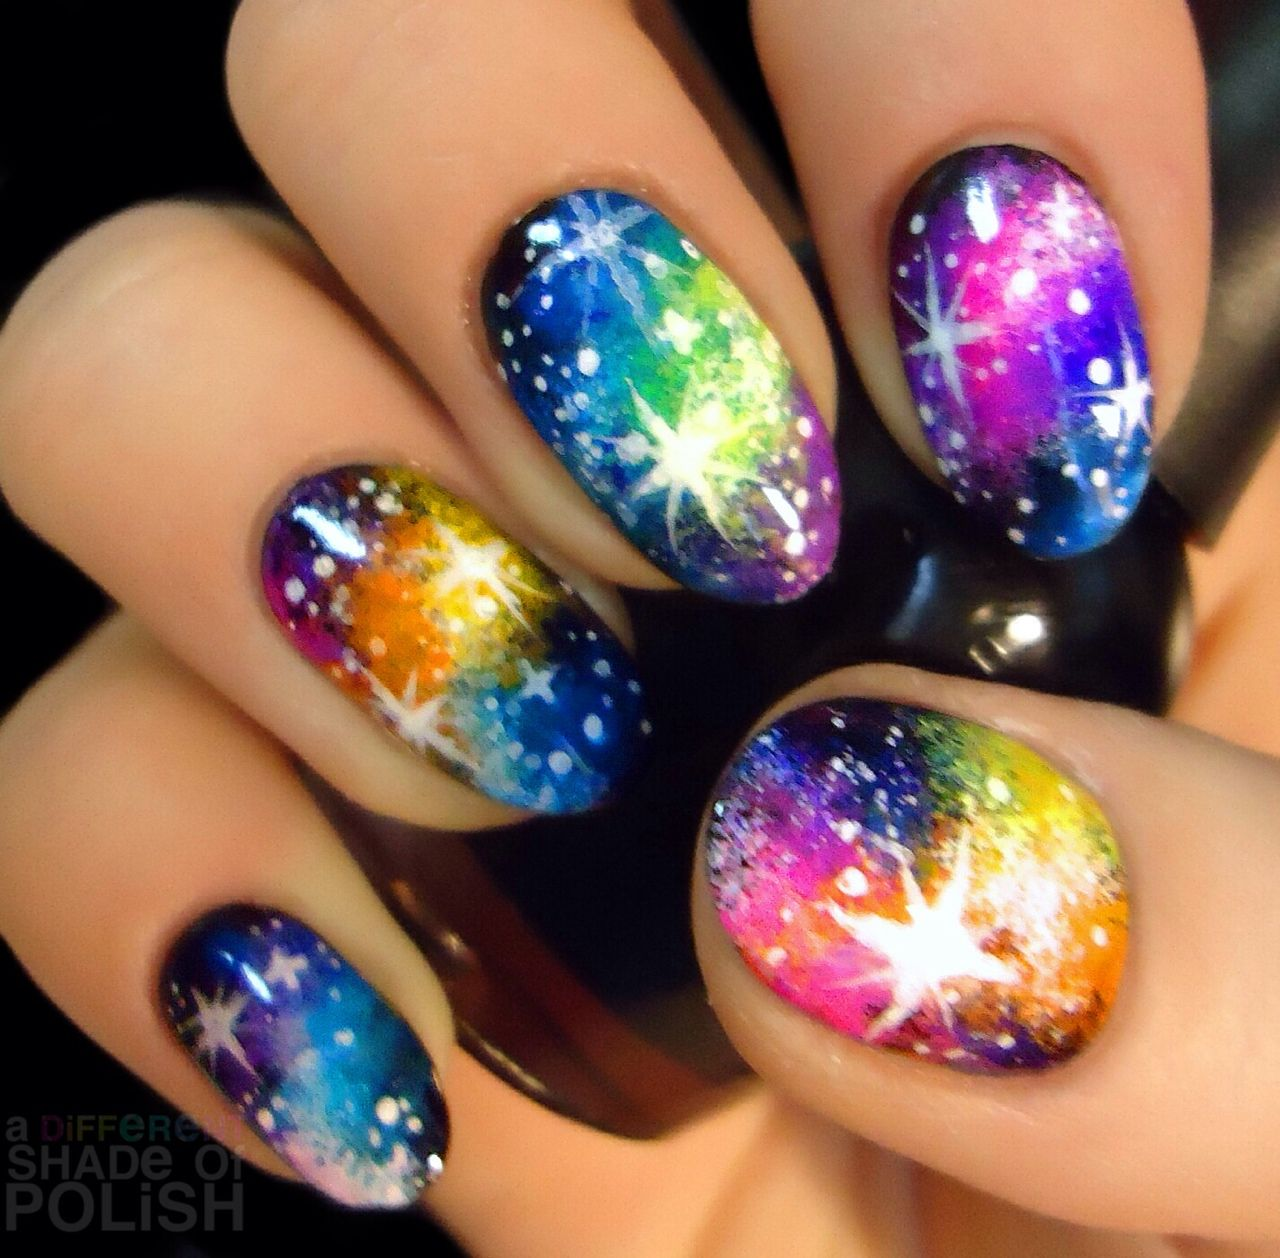 Gelaxy Gel Nail Polish: Repost Of Galaxy Nails I Did Last Year. I'll Be Posting A